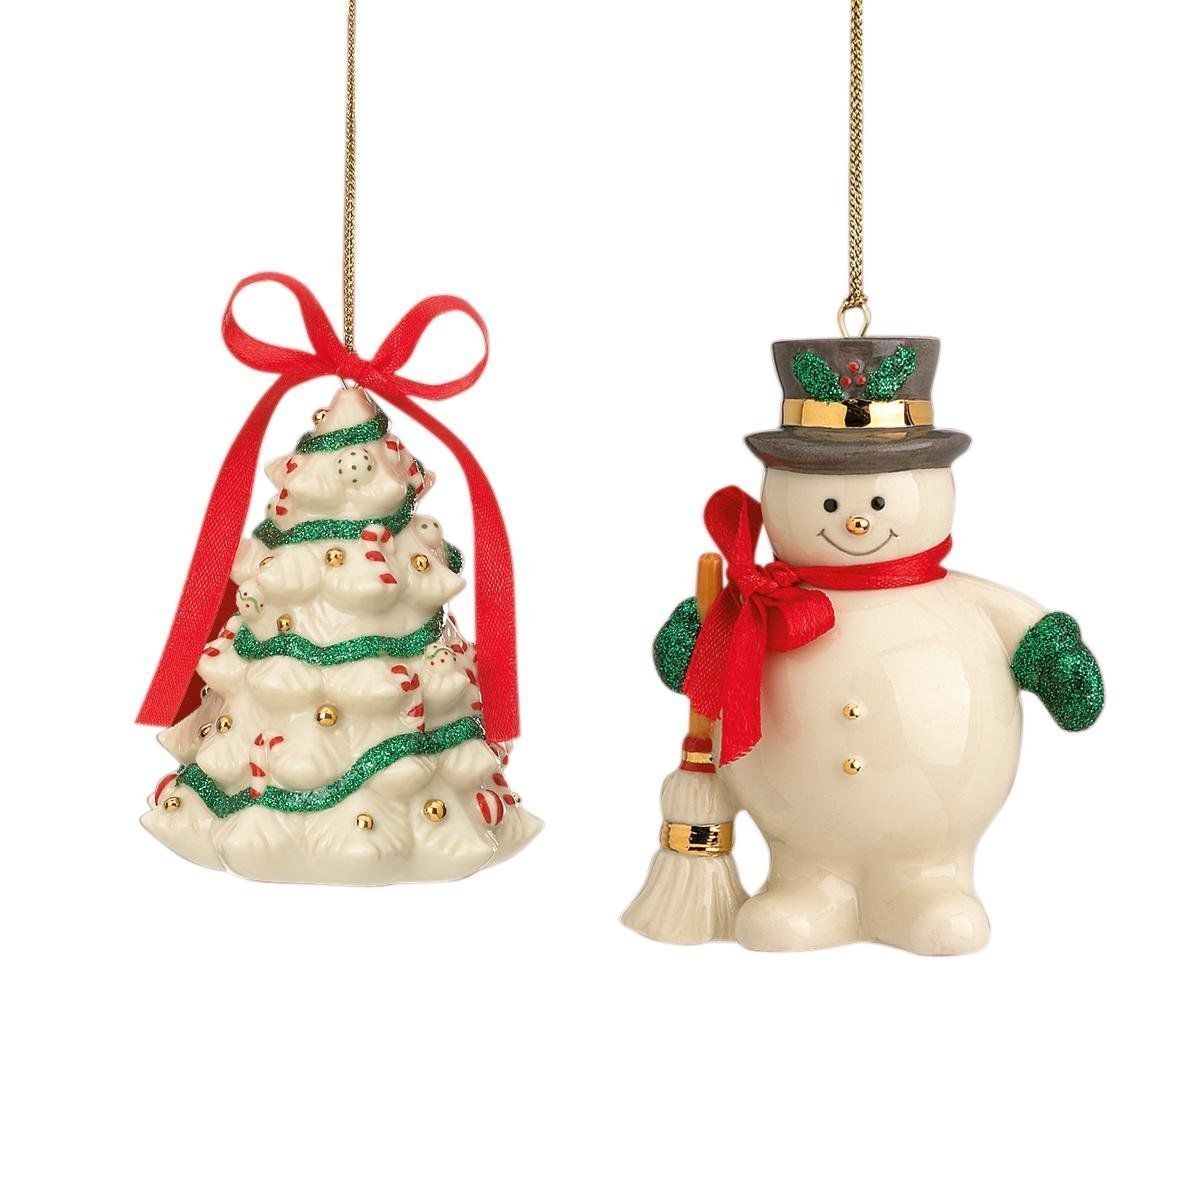 Lenox Holiday Ribbon Christmas Ornaments Snowman & Tree Set of 2  NEW